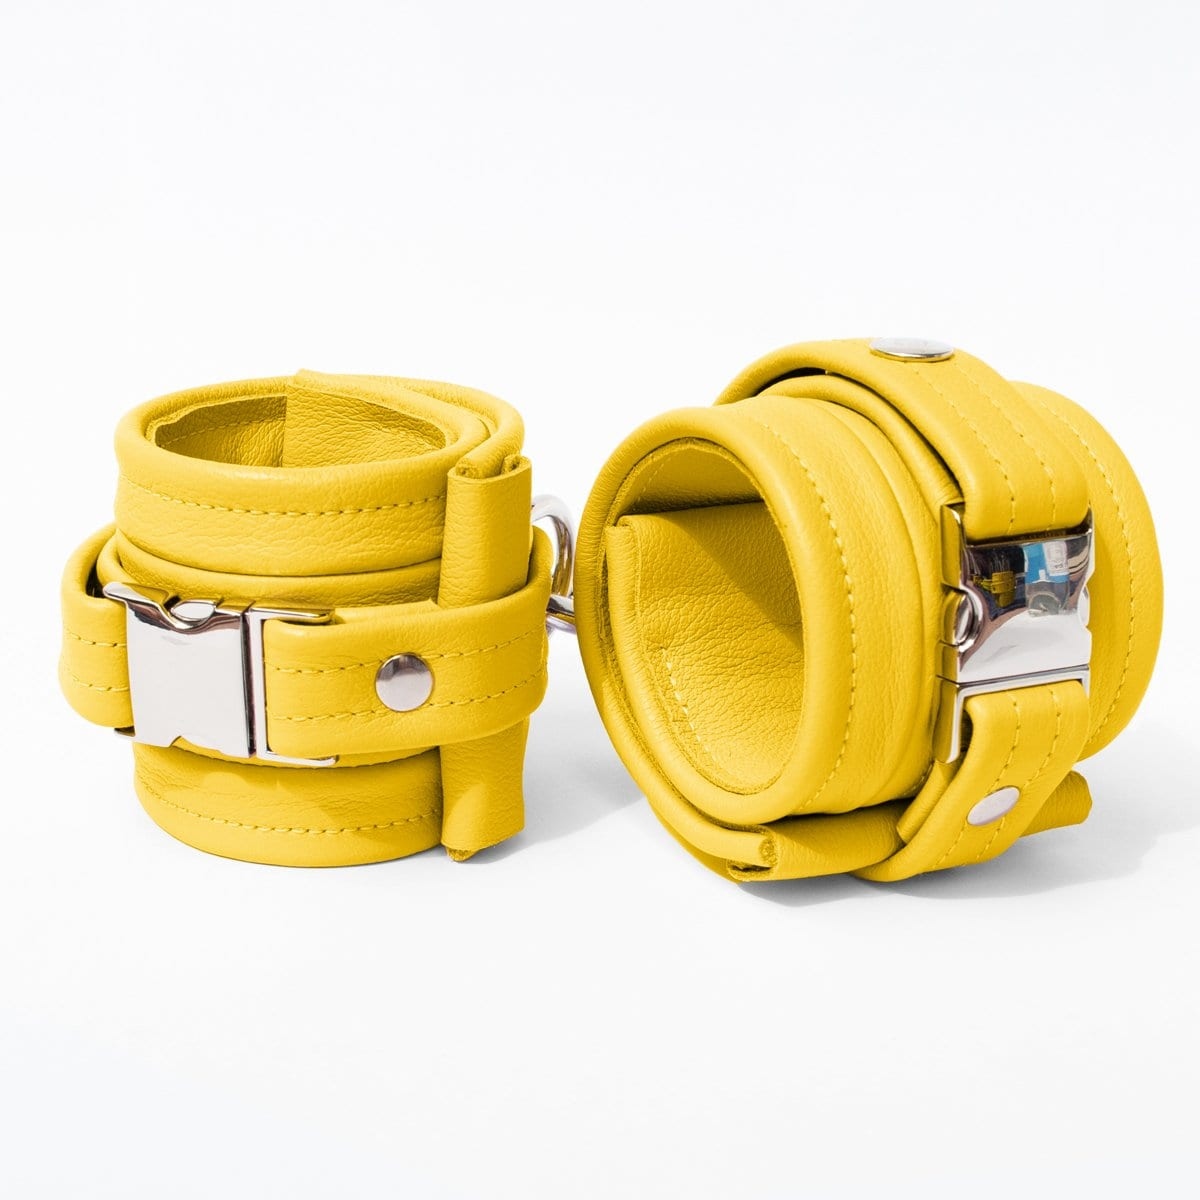 One Size Wrist Restraint Set - Standard Leather - Yellow - Silver Metal Fittings